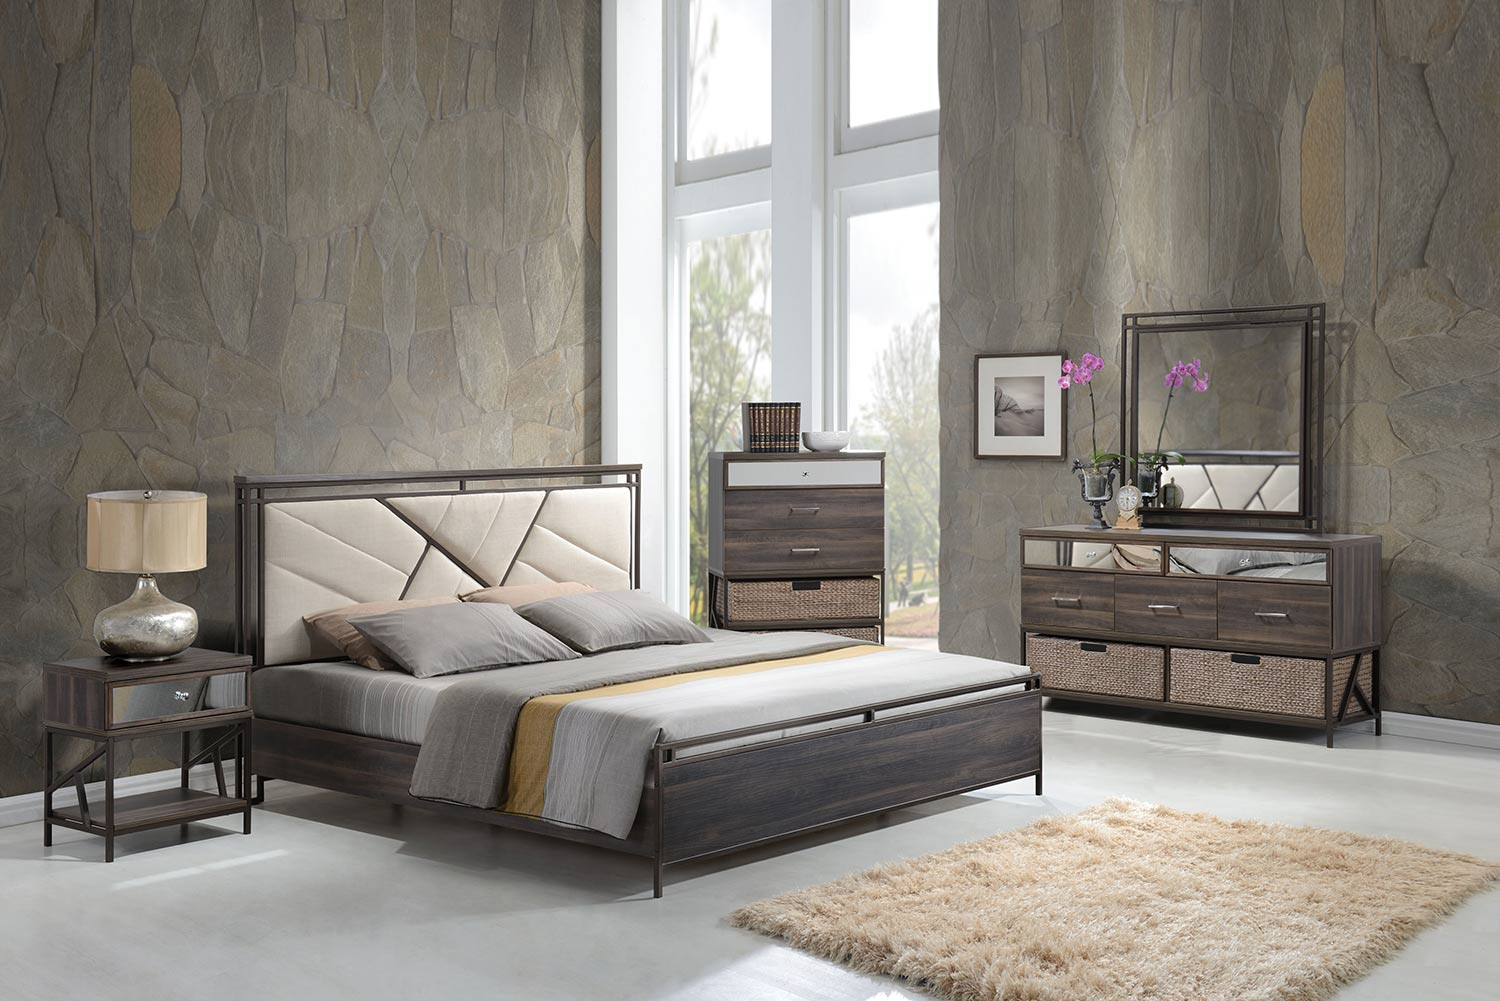 Acme Adrianna Bedroom Set - Cream Cotton Fabric/Walnut